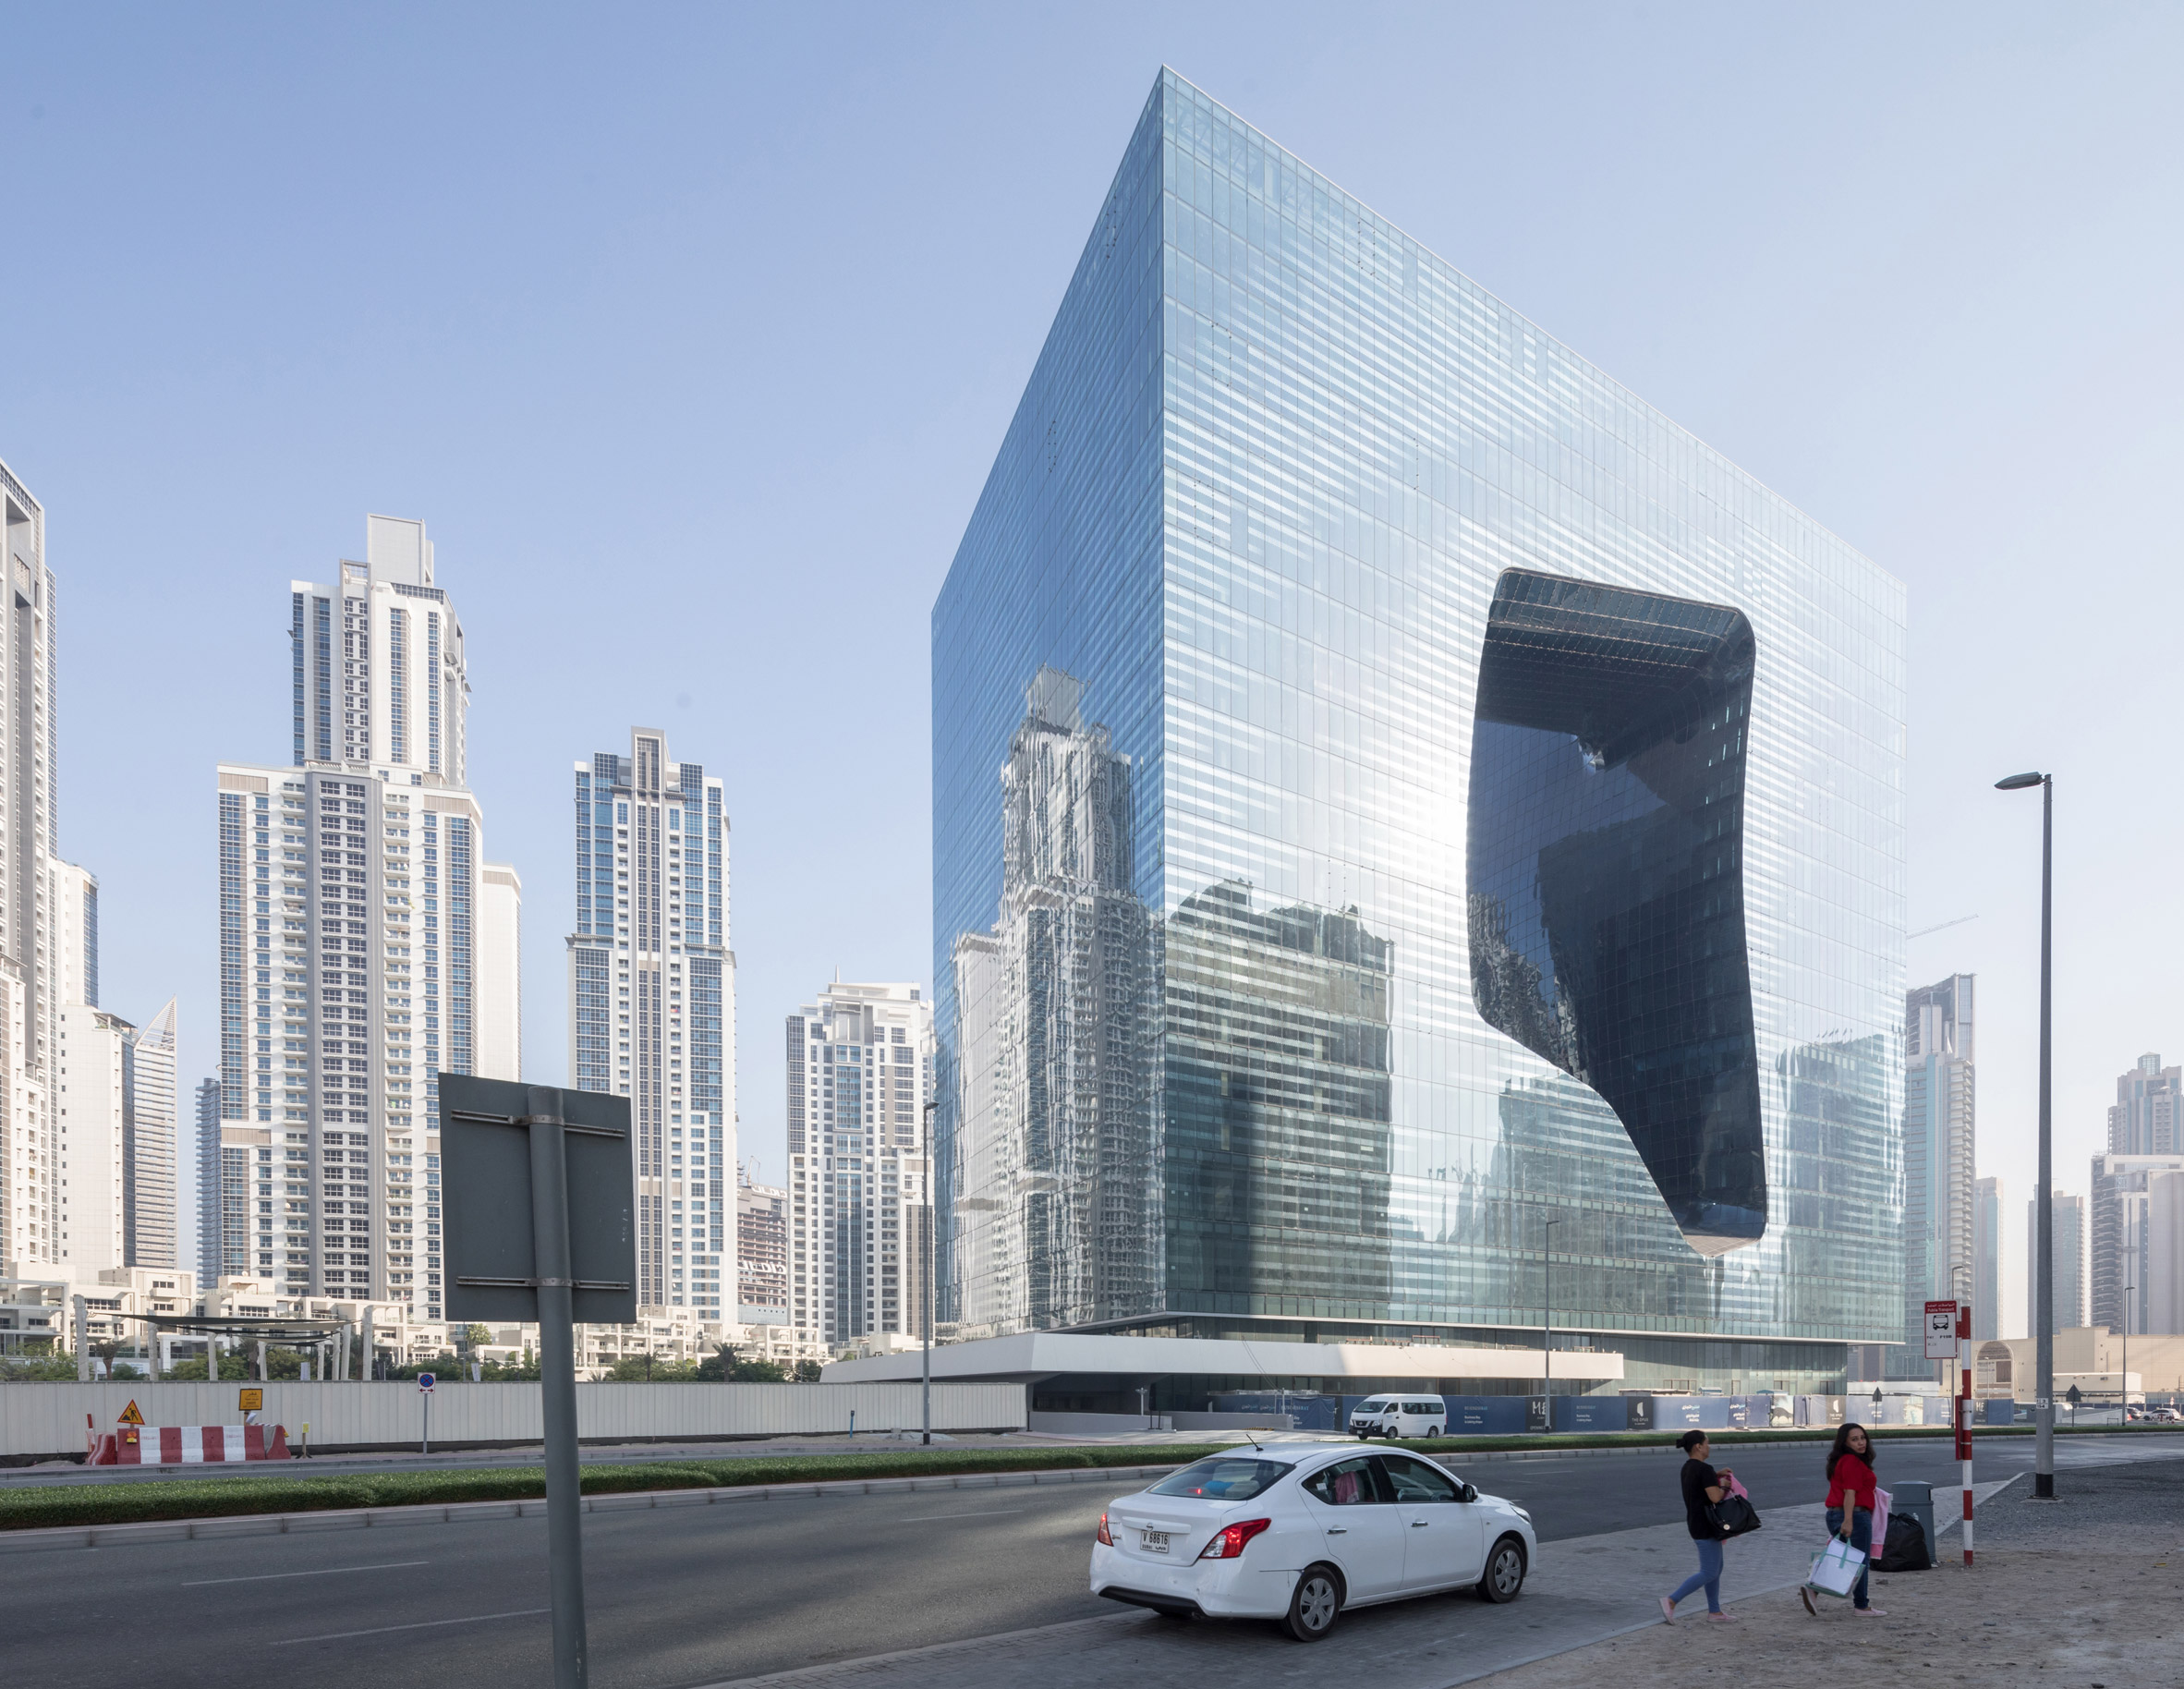 opus-dubai-zaha-hadid-architects-zha-architecture-hotel-photo-laurian-ghinitoiu_dezeen_2364_col_0